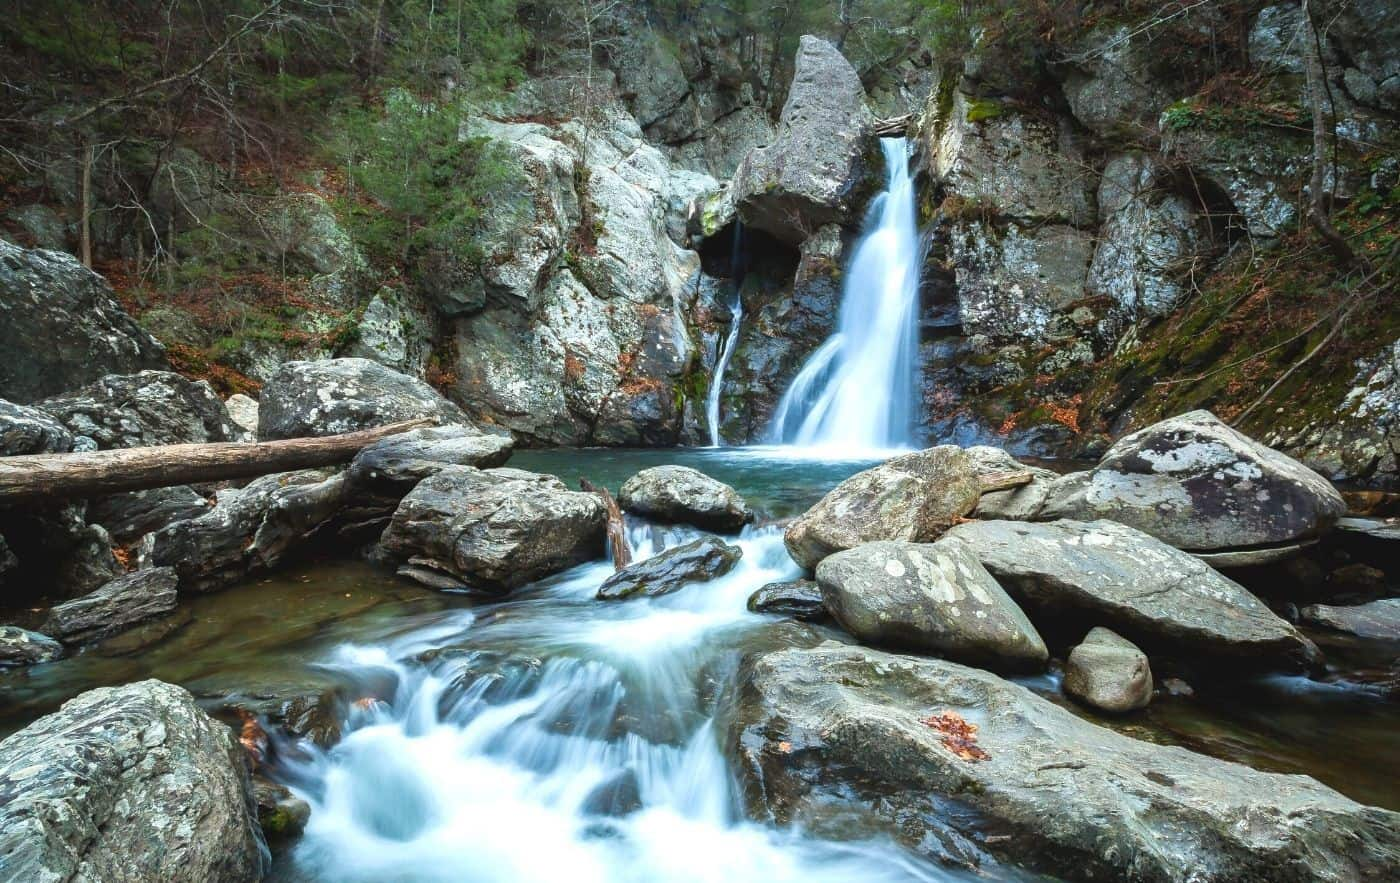 Bash Bish Falls, one of the best waterfalls in New York.